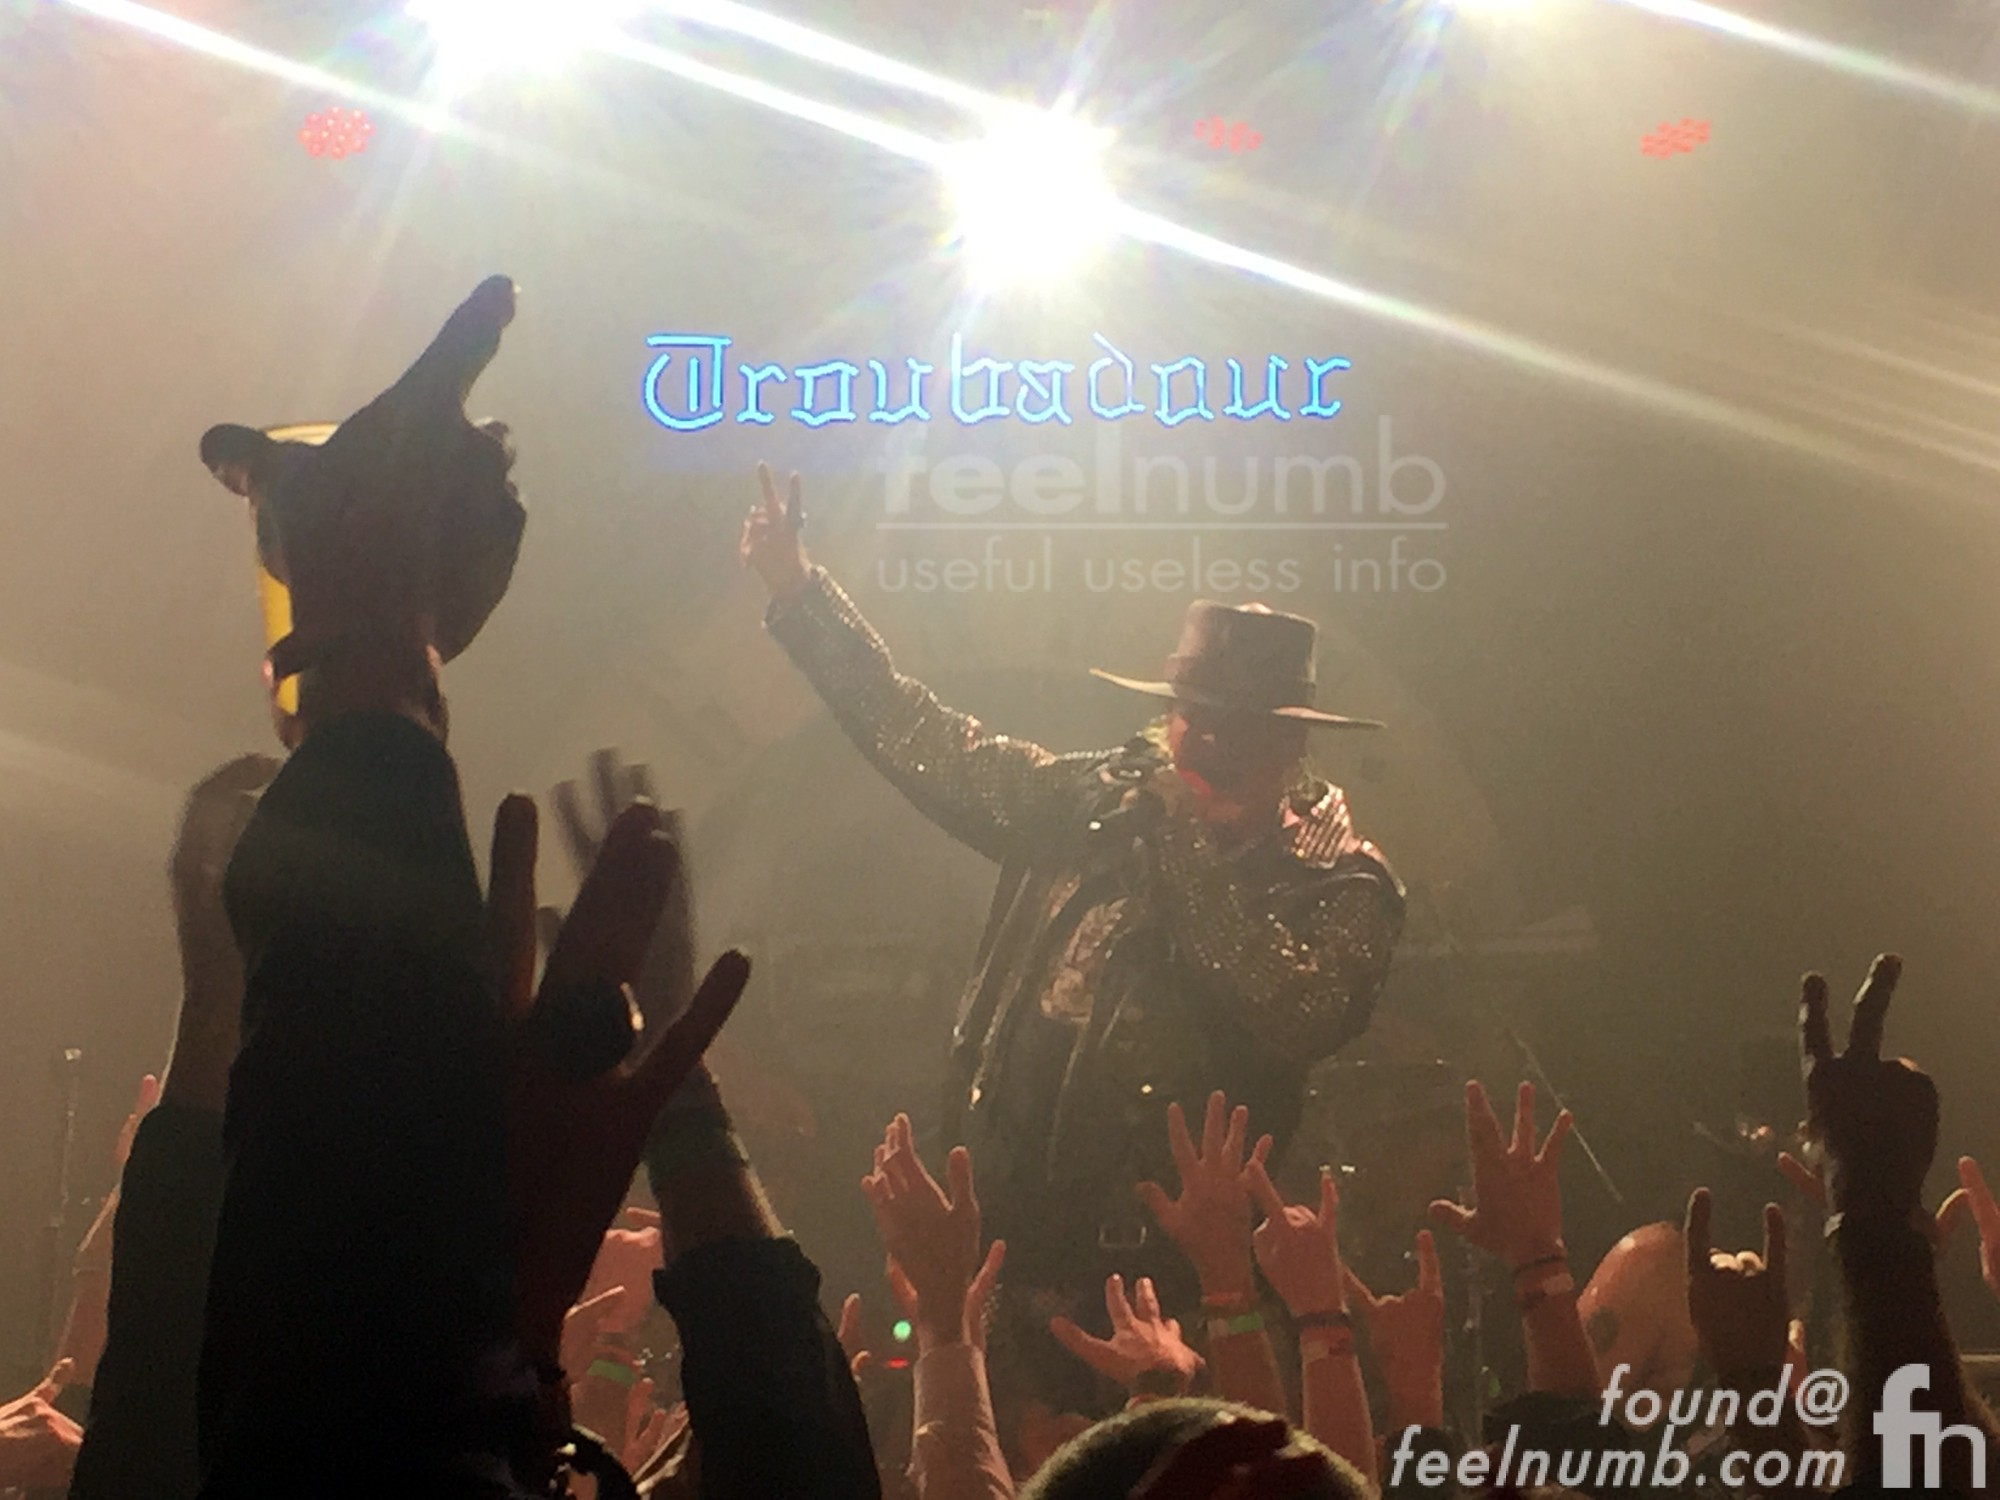 Axl Rose Guns N' Roses GNR First Show 2016 The Troubadour Los Angeles, CA feelnumb.com